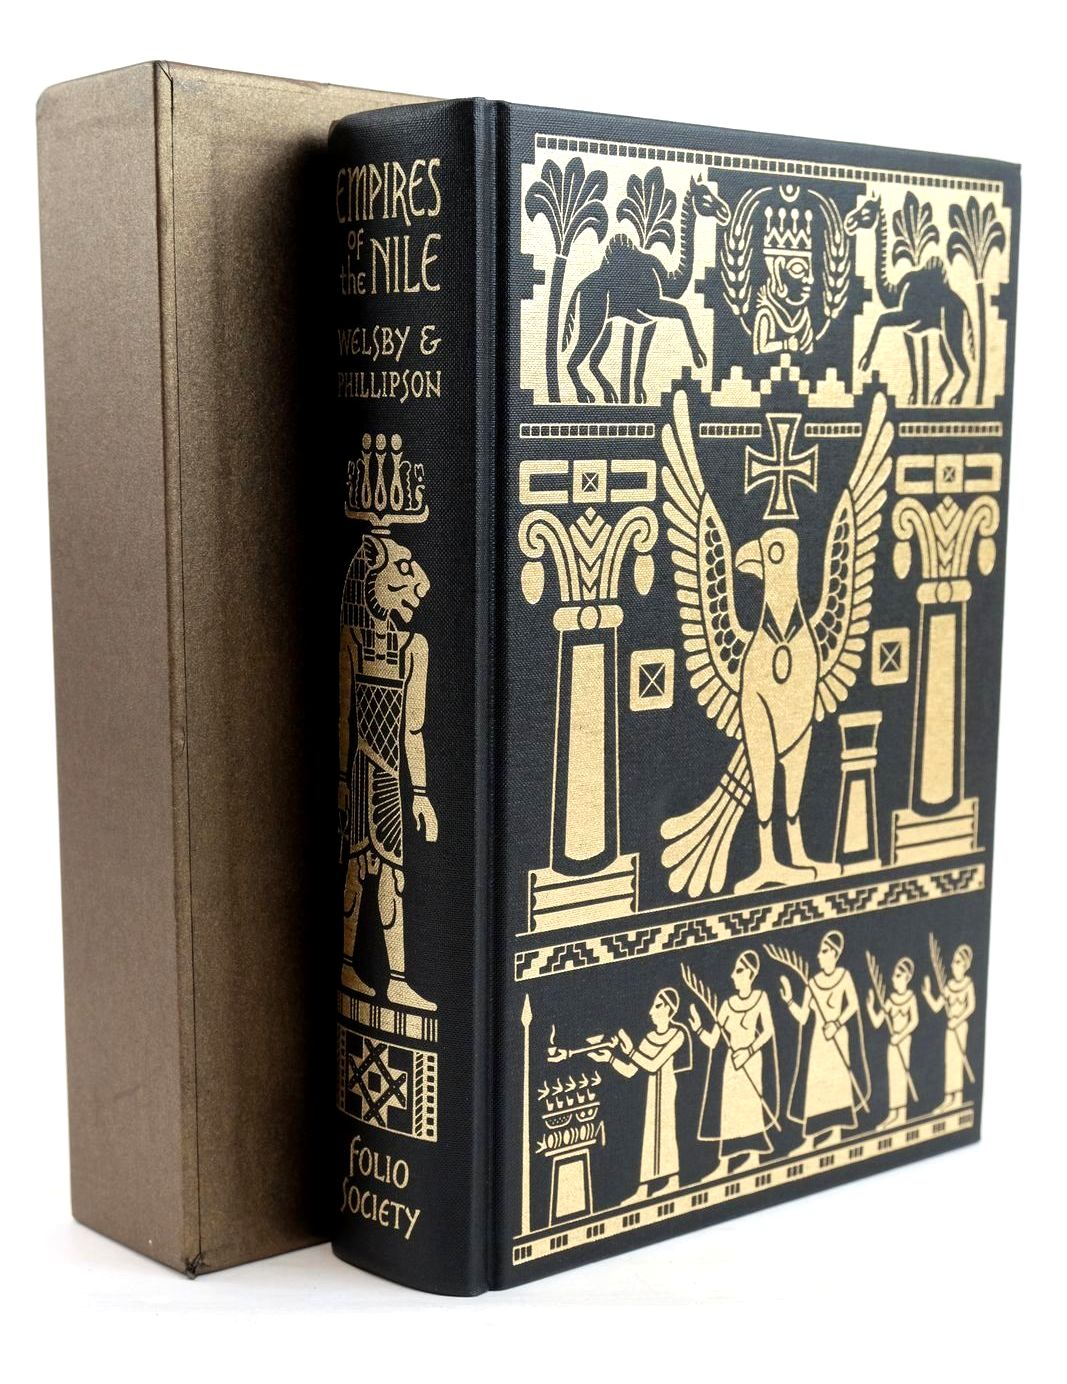 Photo of EMPIRES OF THE NILE written by Welsby, Derek A. Phillipson, David W. published by Folio Society (STOCK CODE: 1320414)  for sale by Stella & Rose's Books